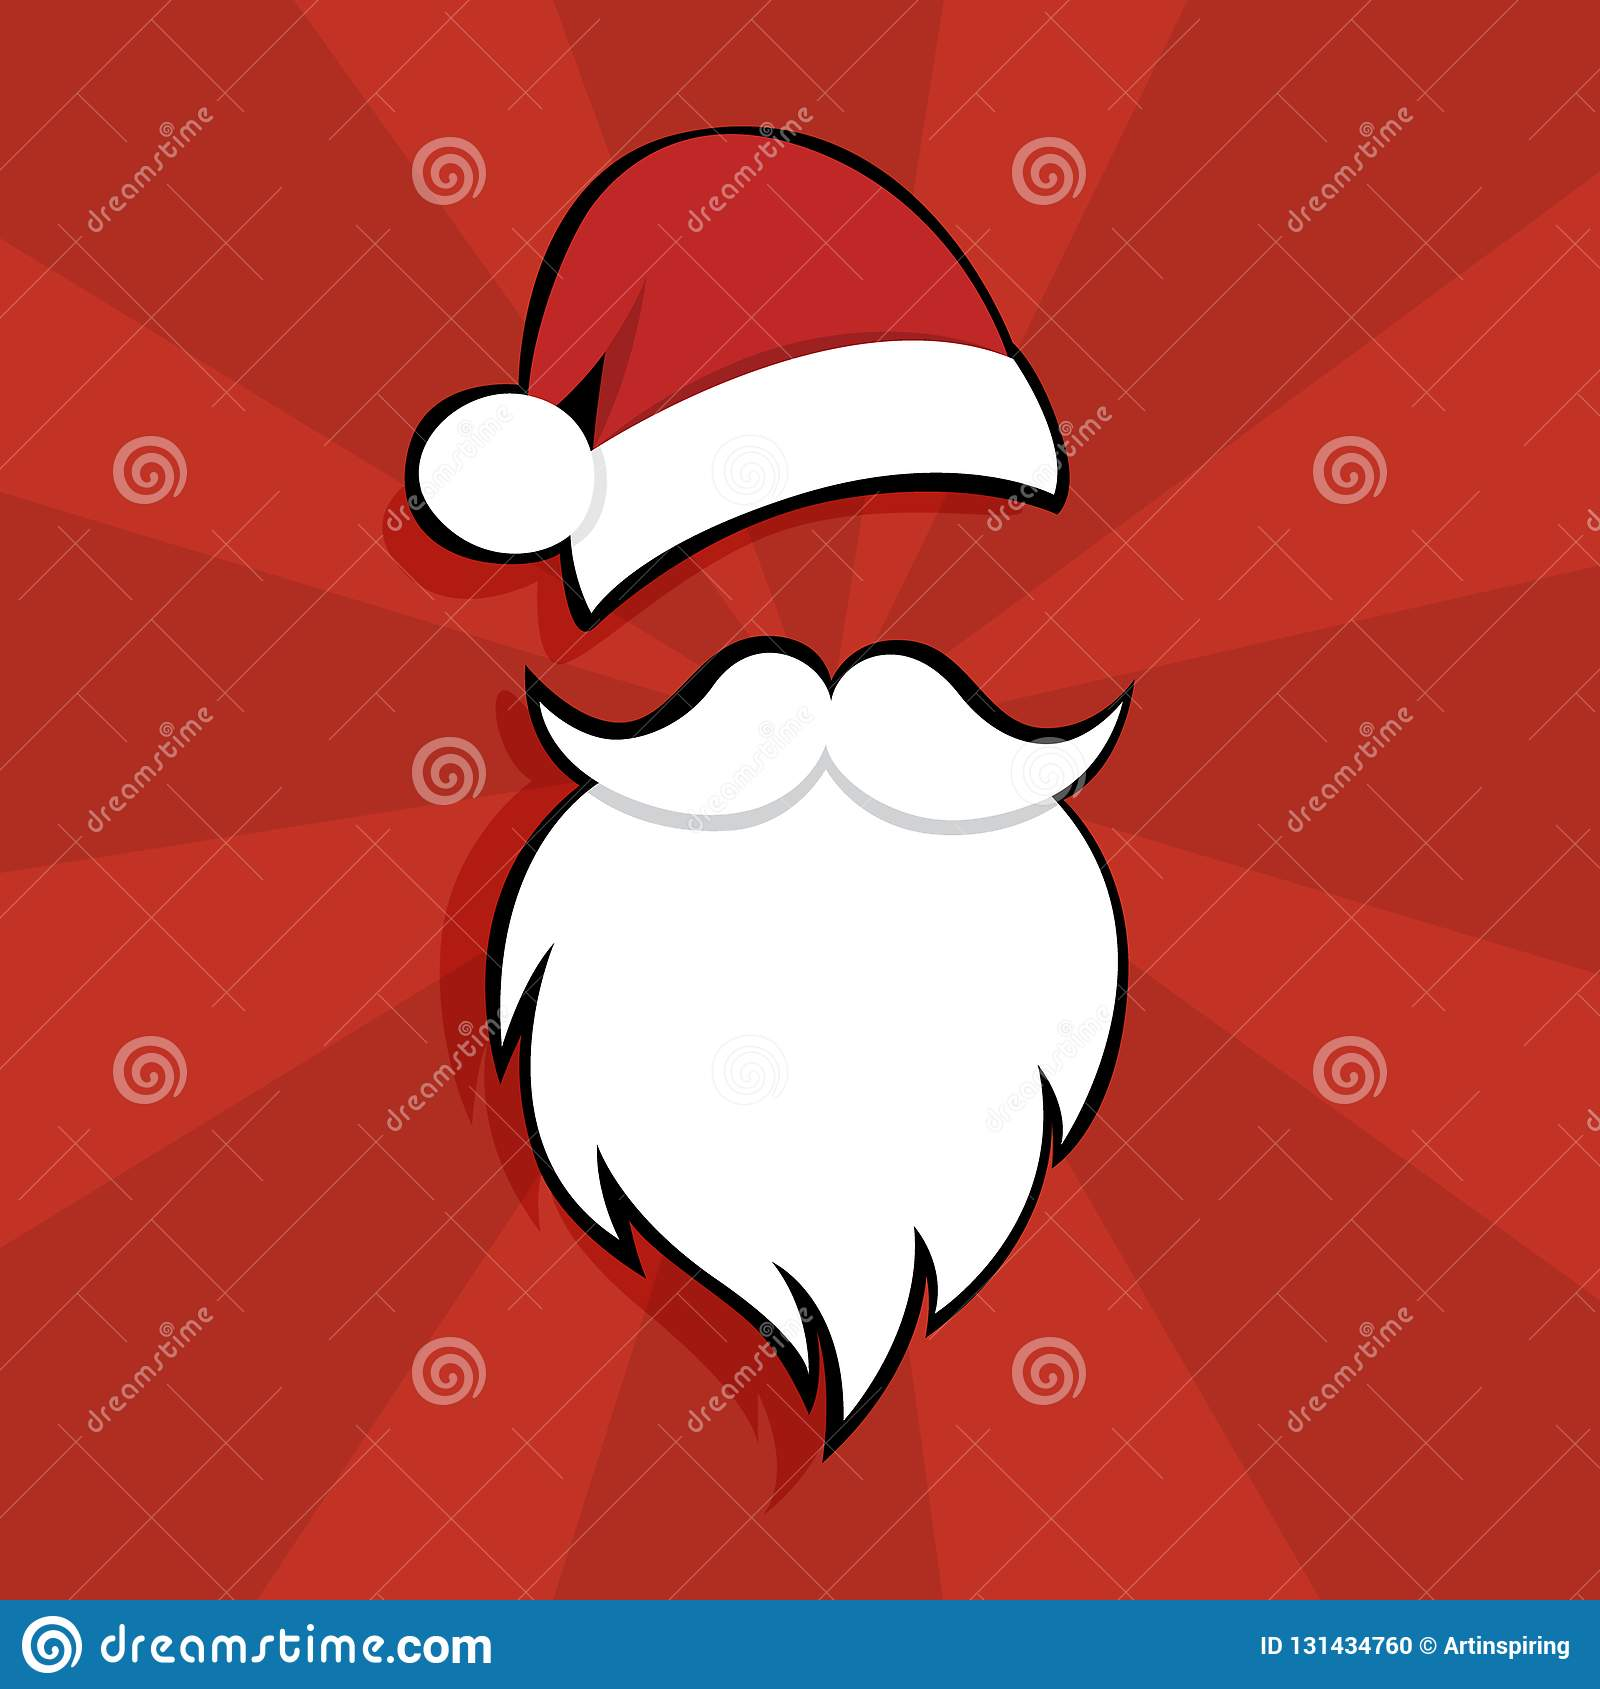 789c2550110 Santa Claus Mask With Hat And Beard Stock Vector - Illustration of ...